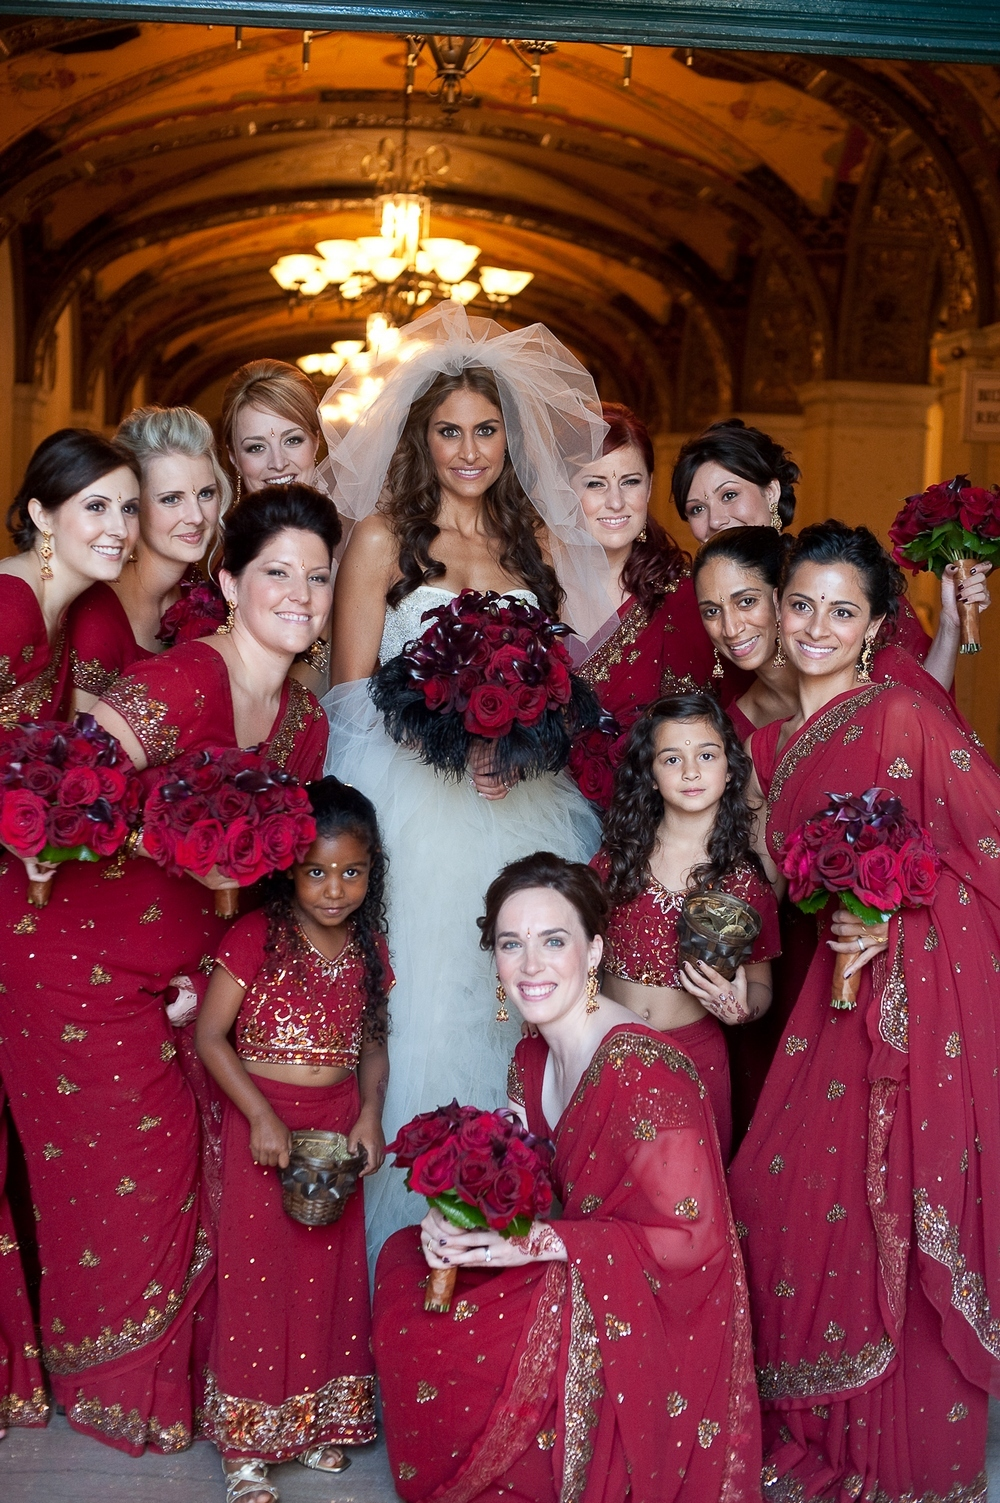 Bride-in-beaded-strapless-wedding-dress-surrounded-by-bridal-party-bridesmaids-flower-girl-in-traditional-red-gold-saris.full